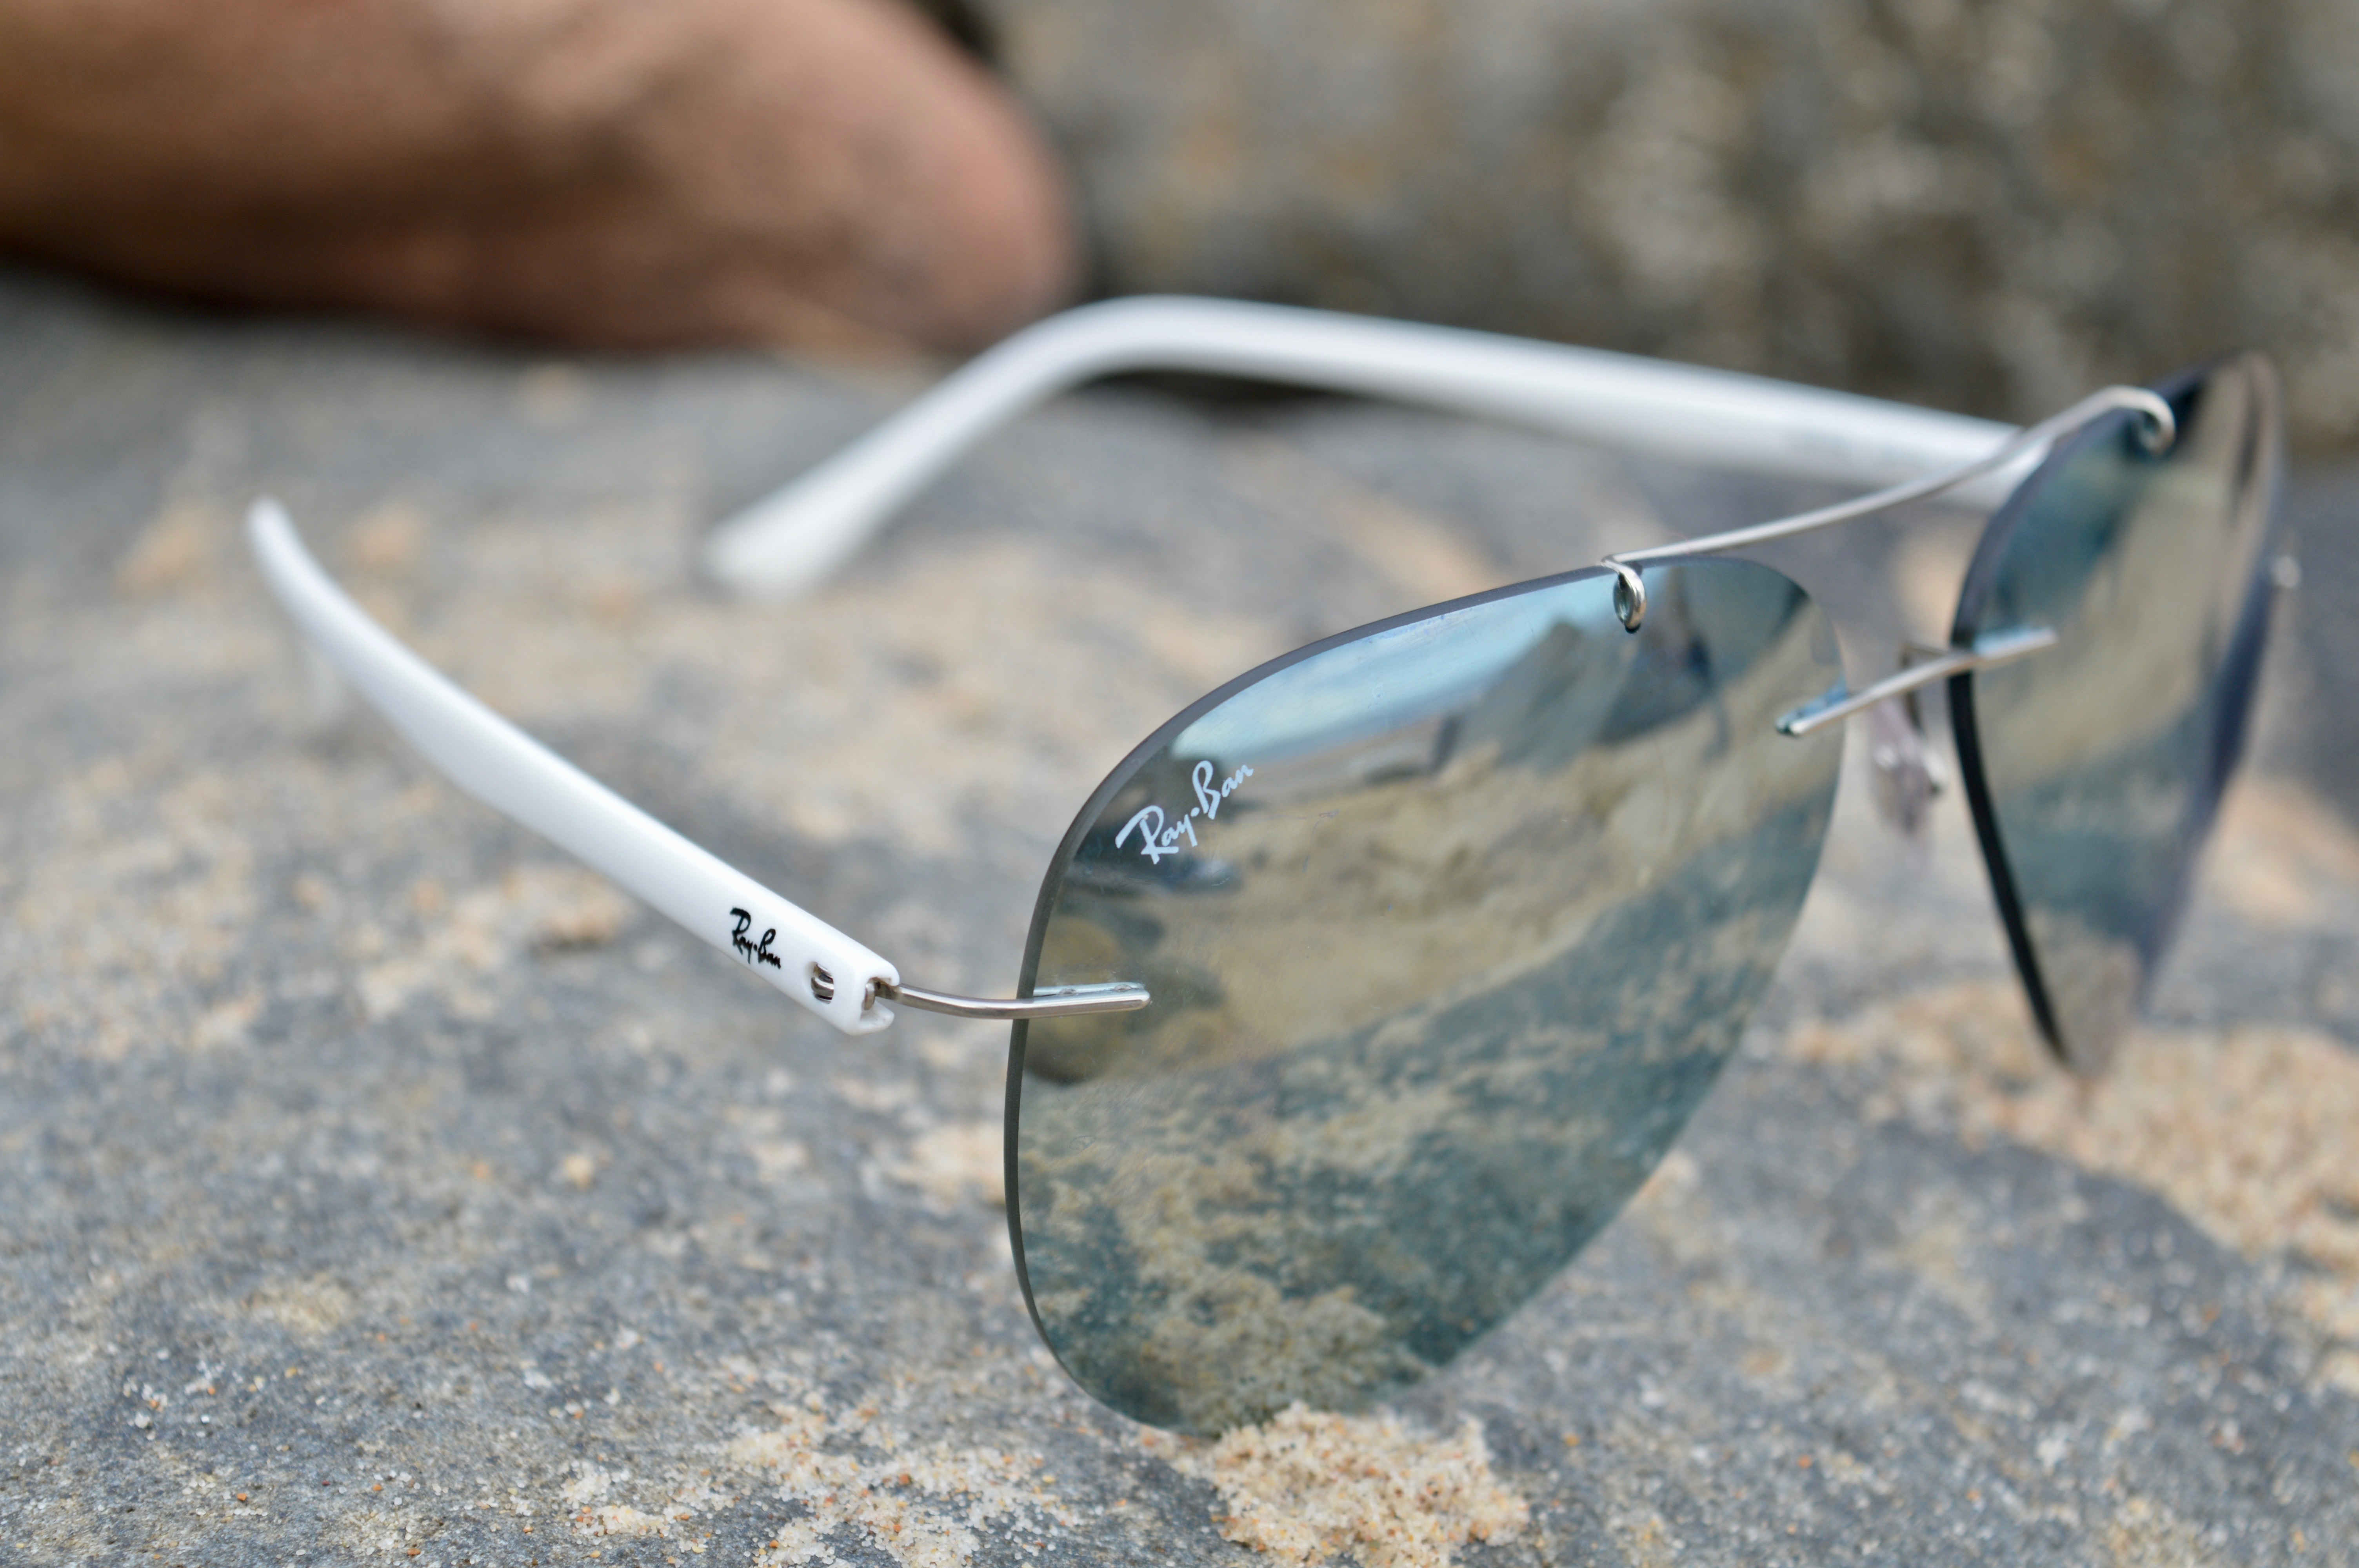 Ray-Ban 8058 Aviators from Sunglasses Shop - Discount Code 0c9041fafe